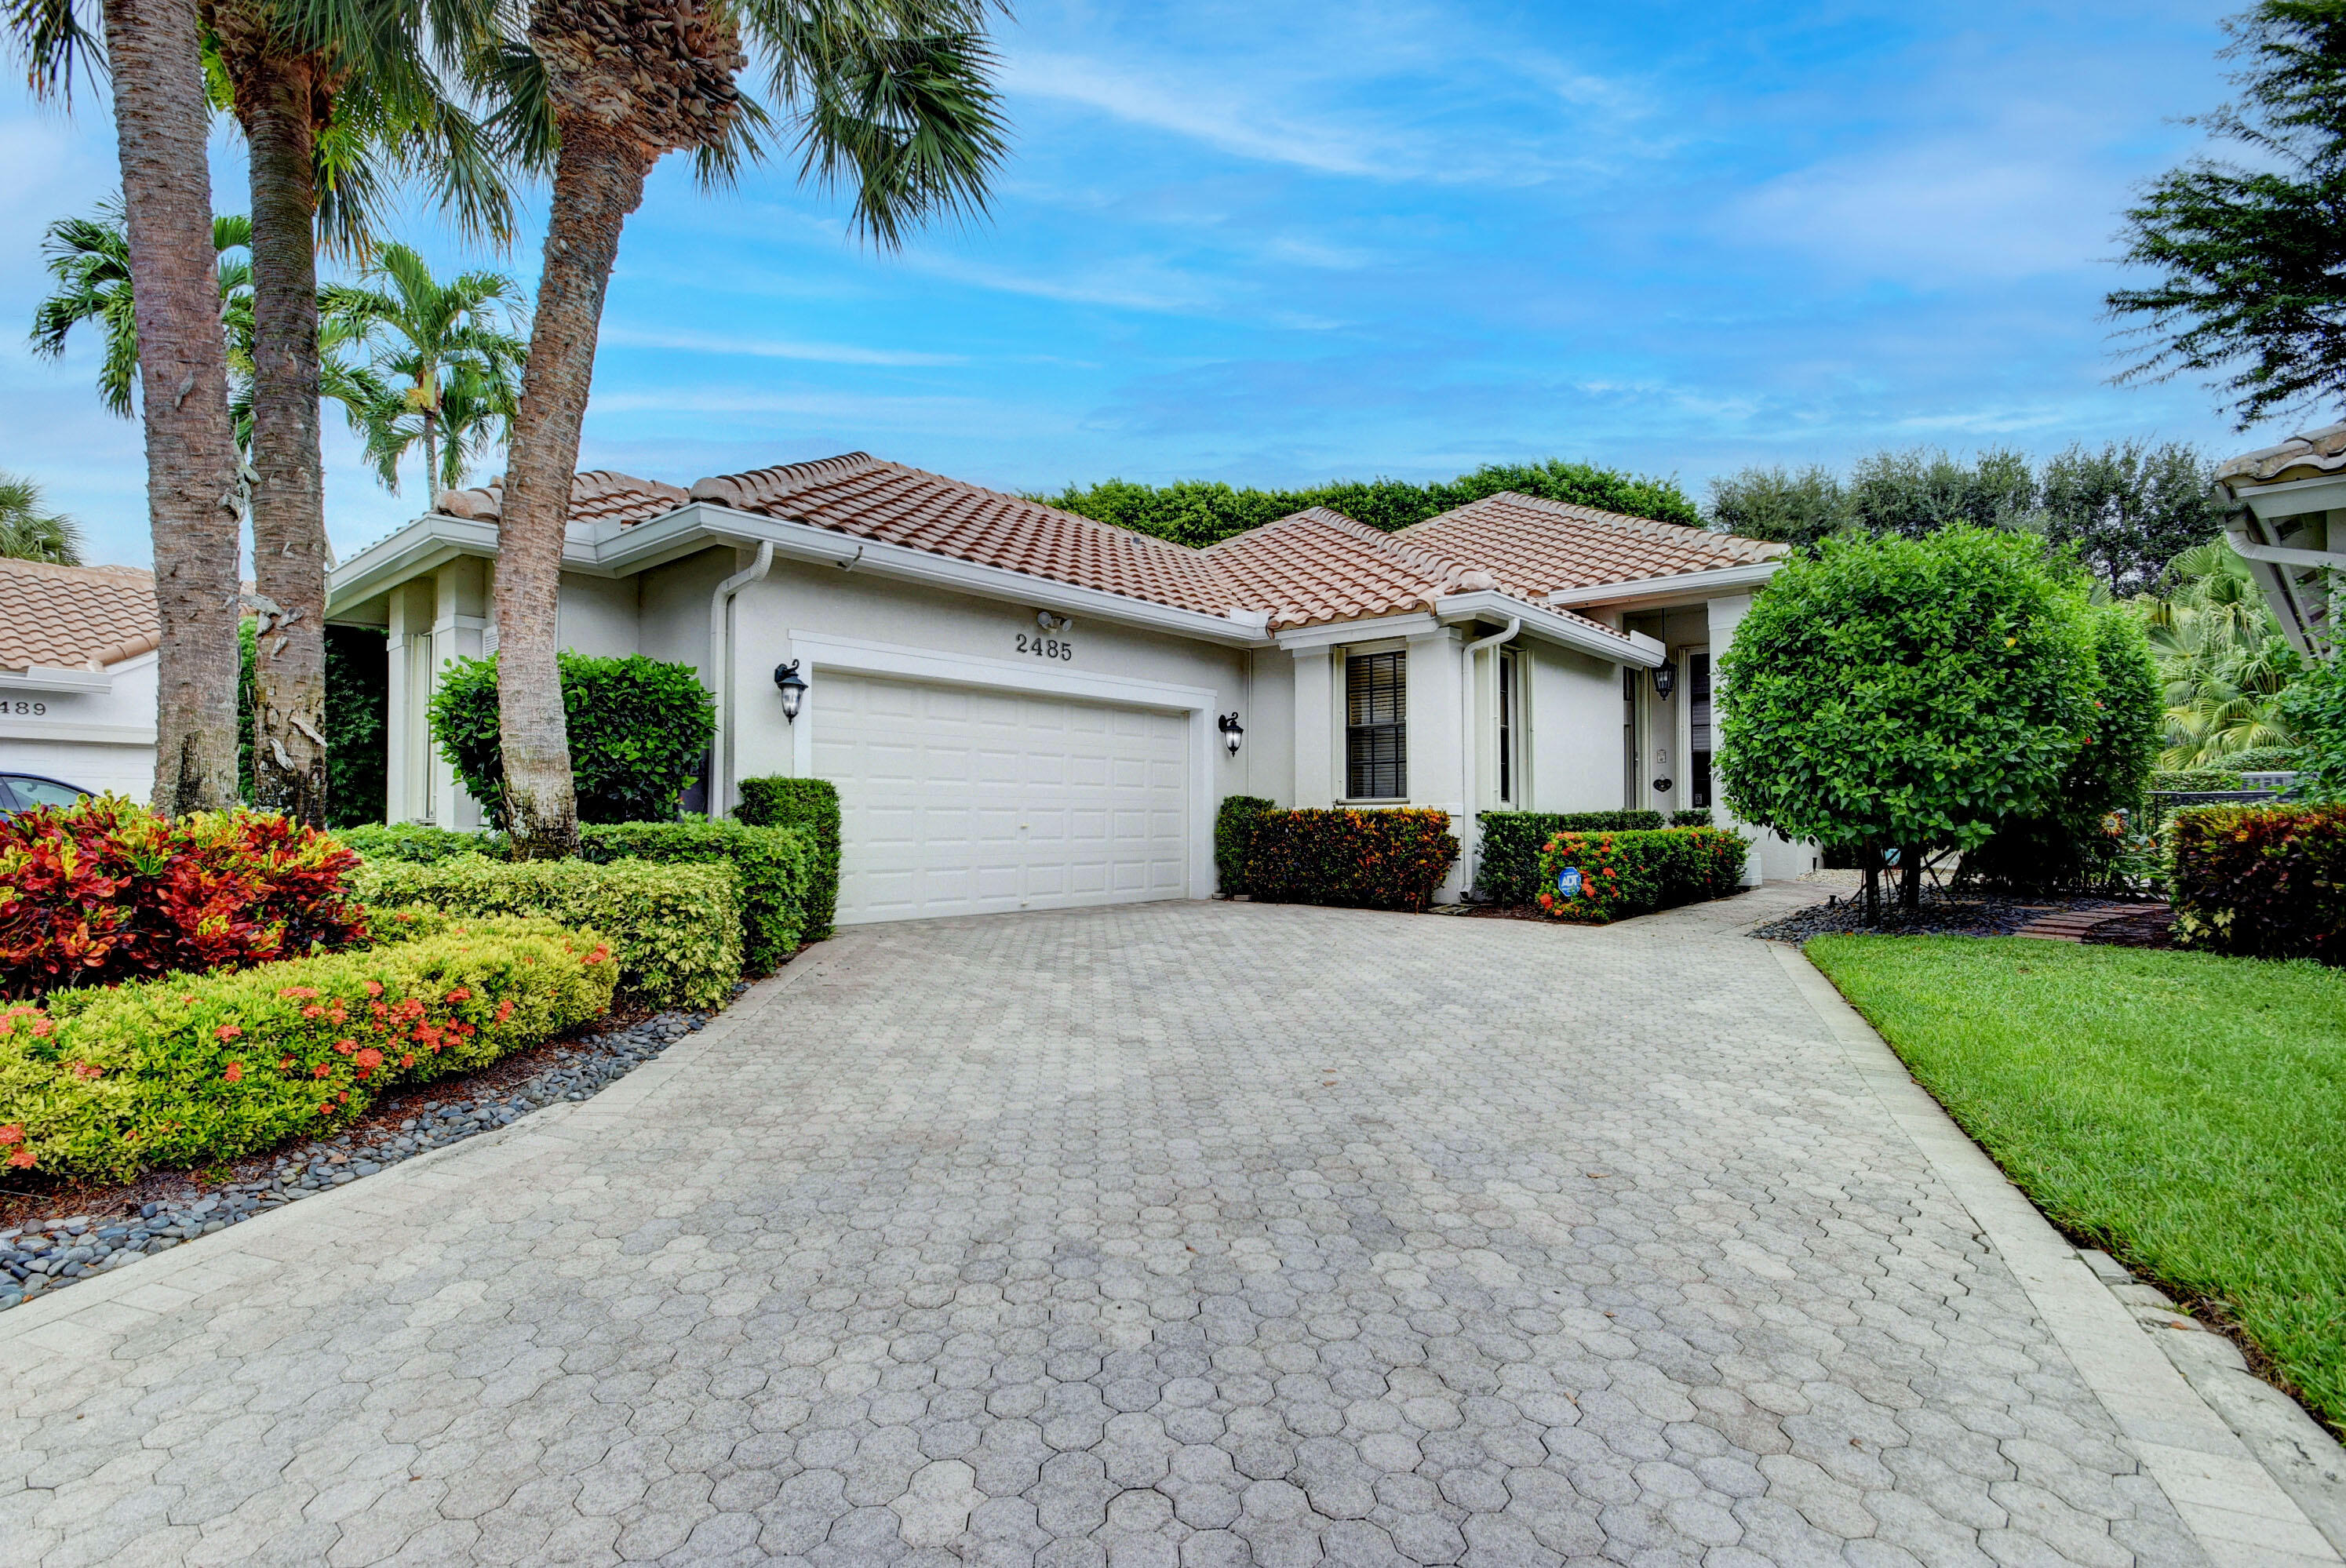 2485 NW 64th Street  For Sale 10751216, FL